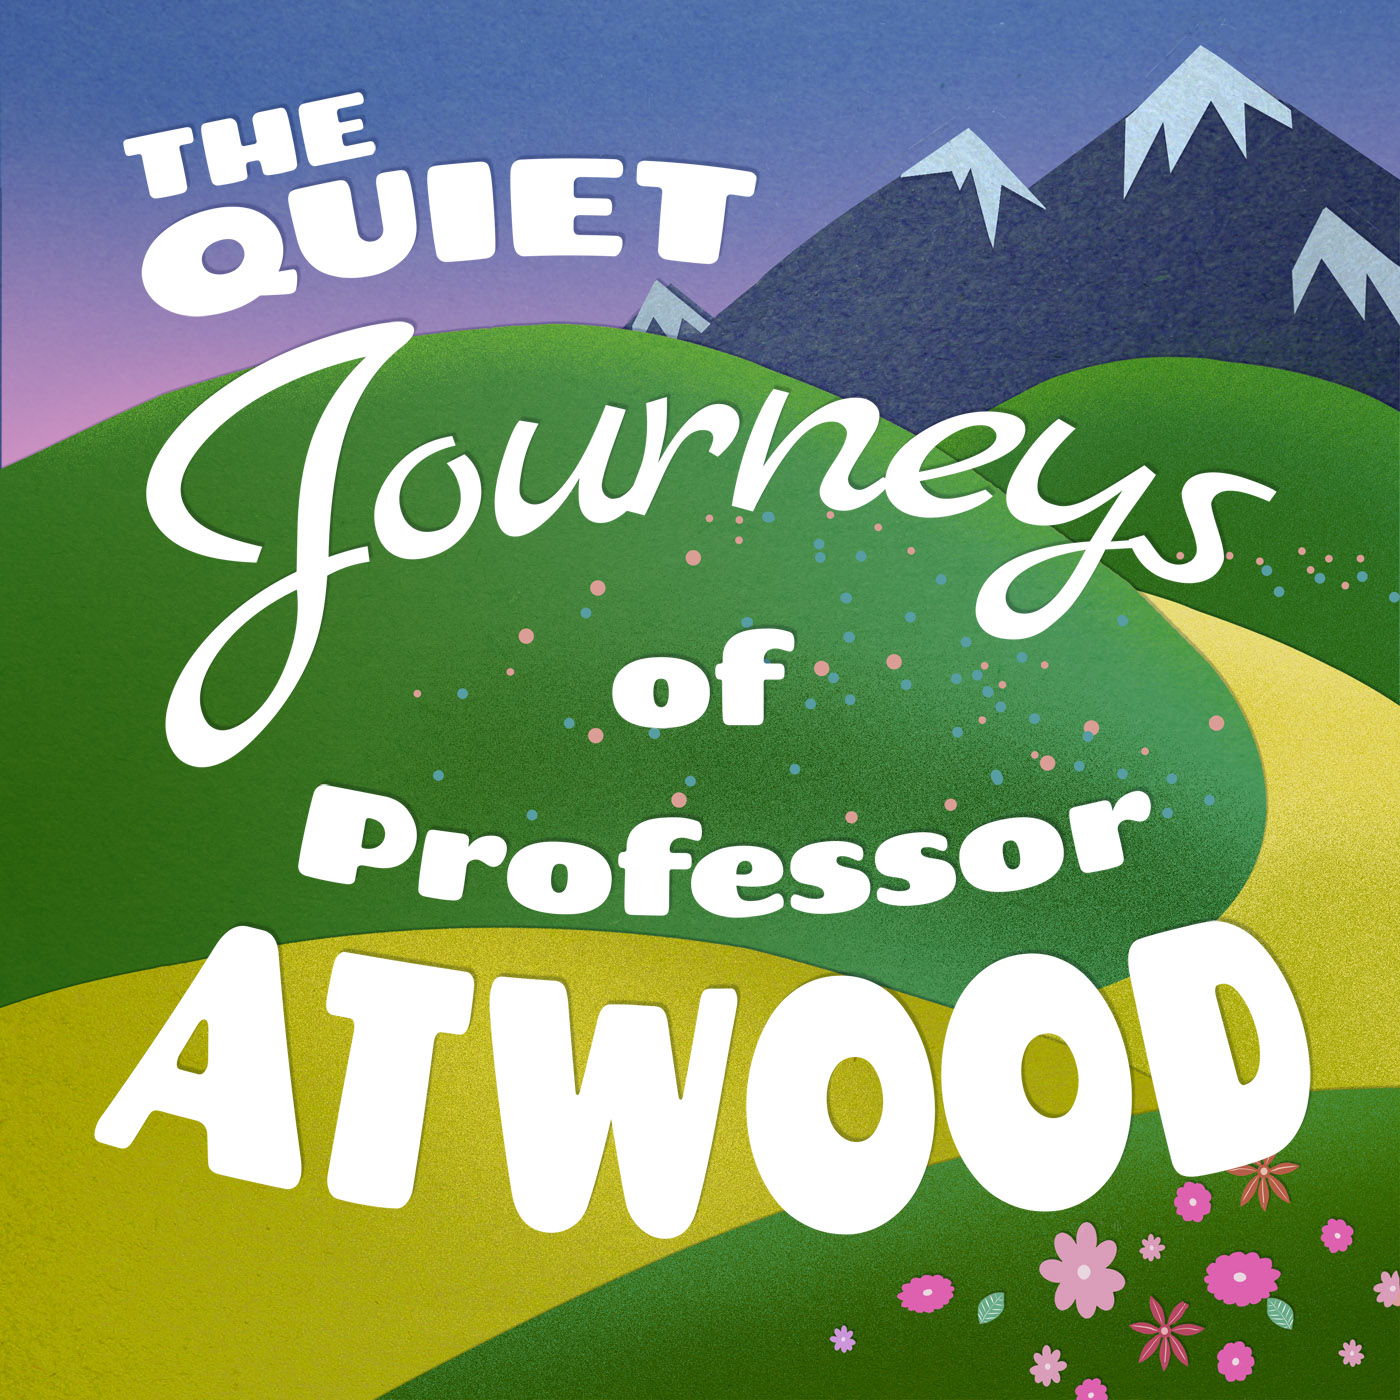 The Quiet Journeys of Professor Atwood podcast show image